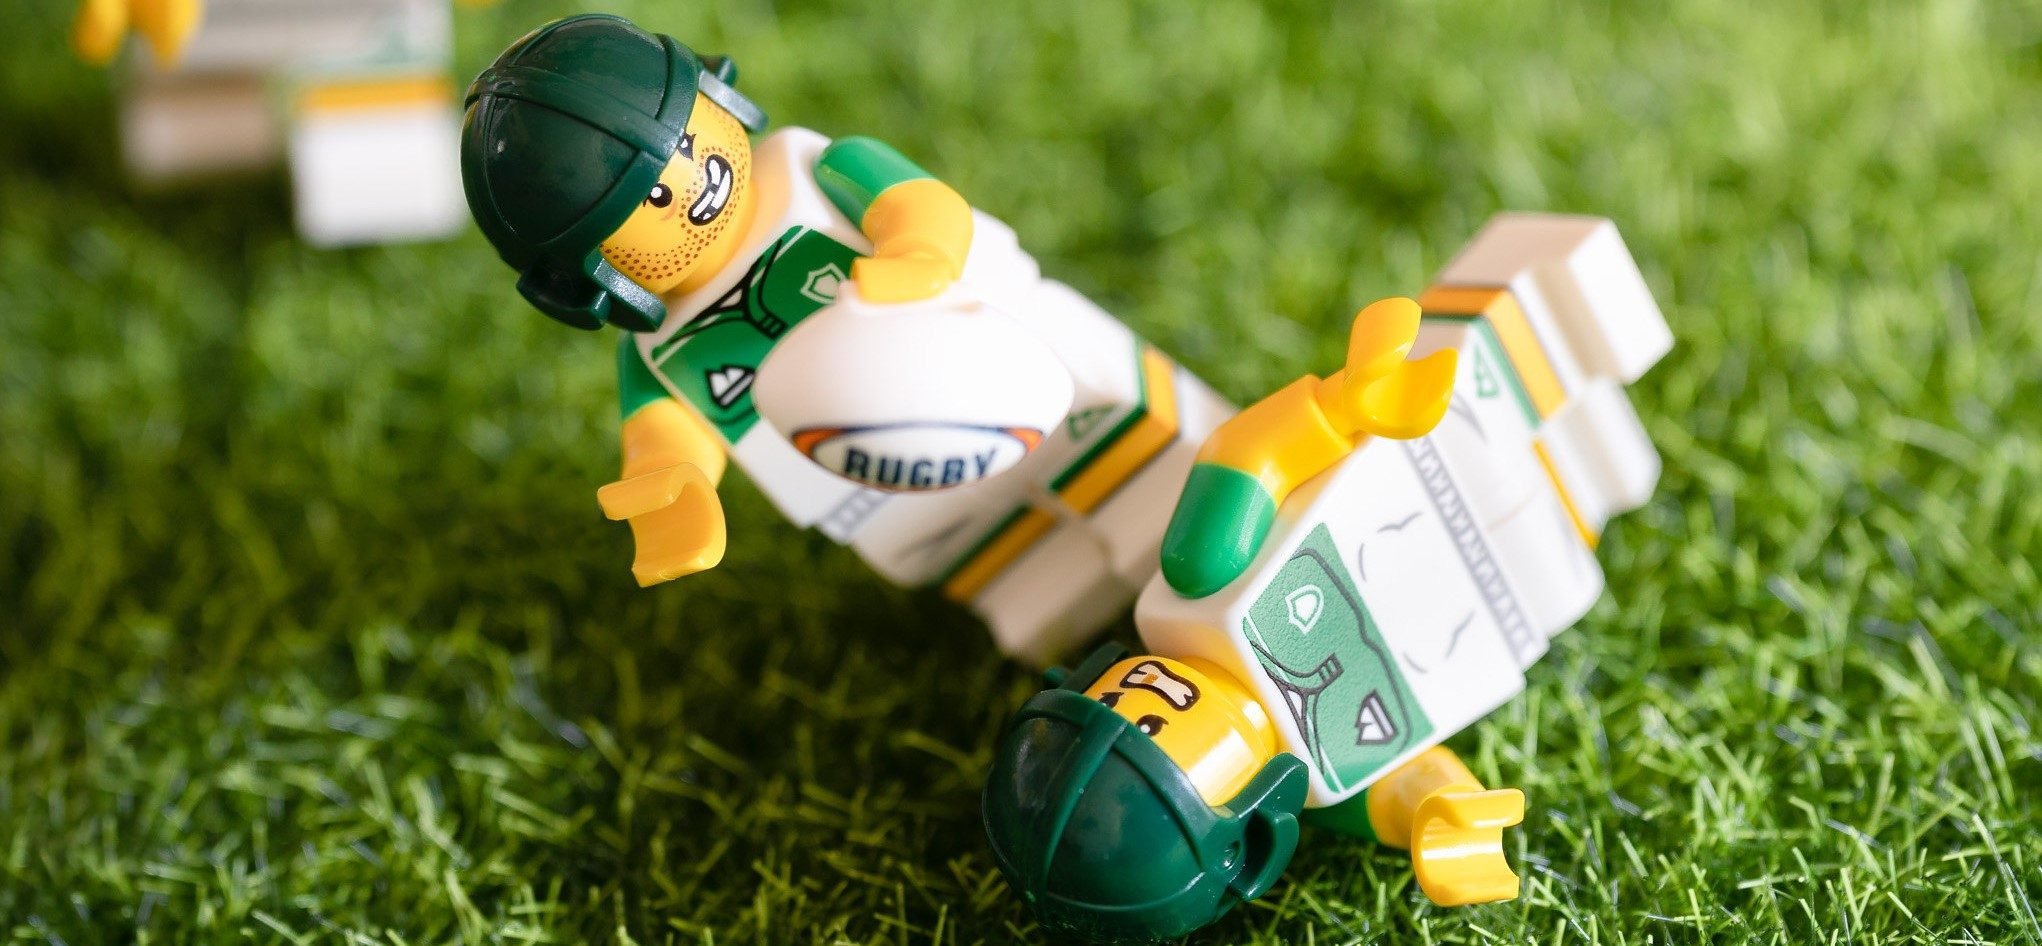 LEGO Rugby players in action.